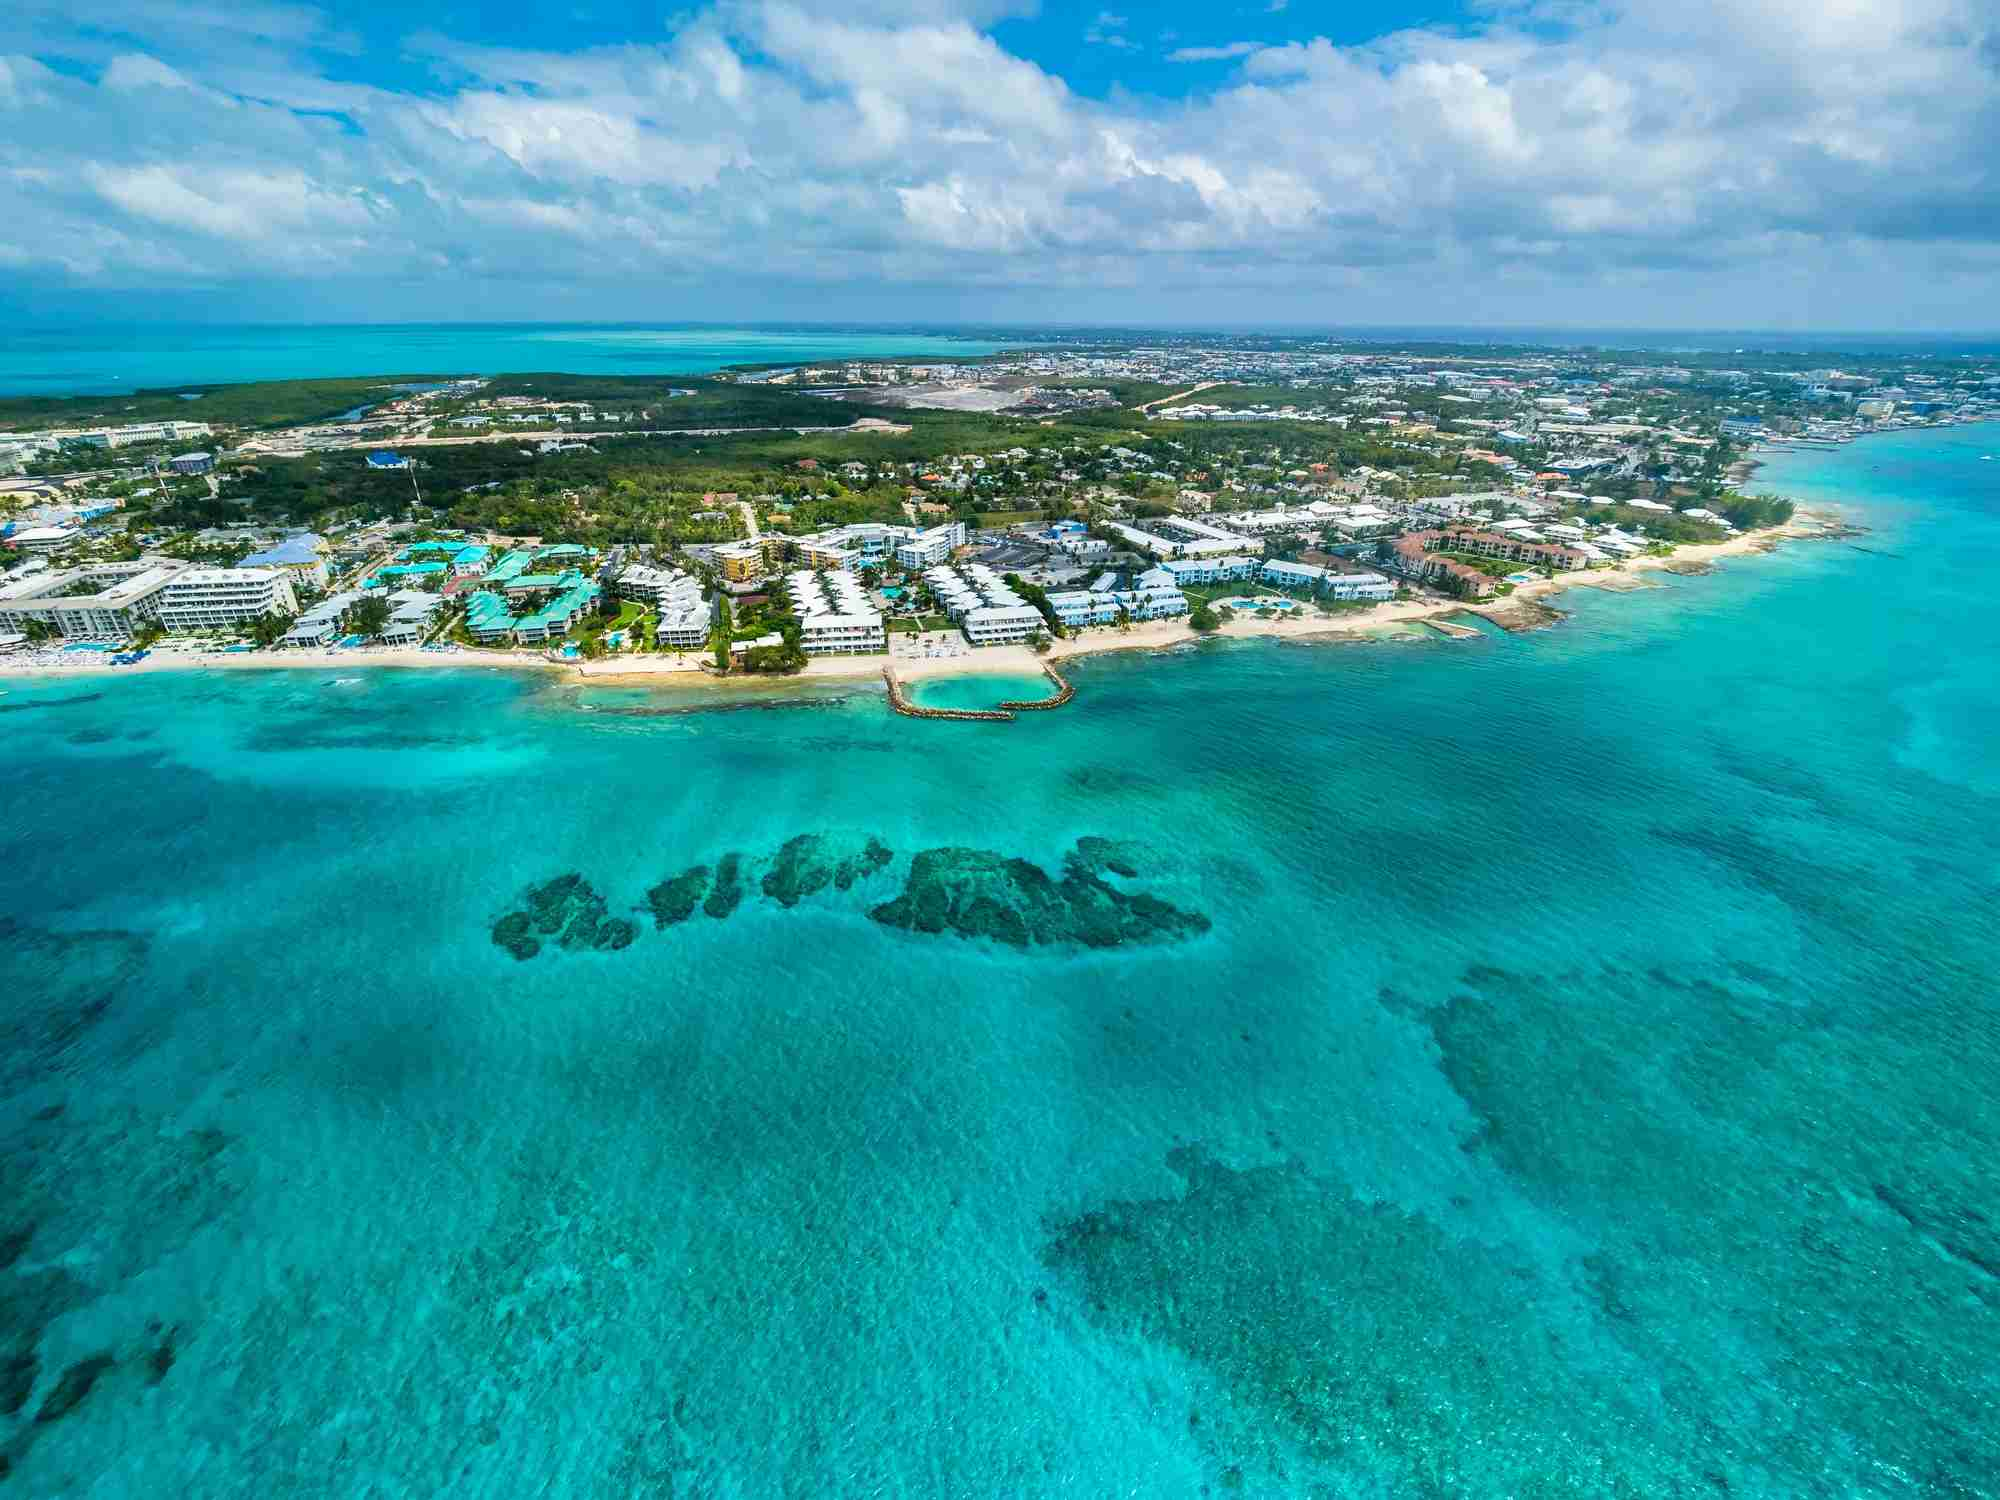 Karibik, Cayman Islands, Grand Cayman, George Town, Flug uber George Town und den Seven Miles Beach, Luxus Hotels und Appartements, (Karibik, Cayman Islands, Grand Cayman, George Town, Flug uber George Town und den Seven Miles Beach, Luxus Hotels un